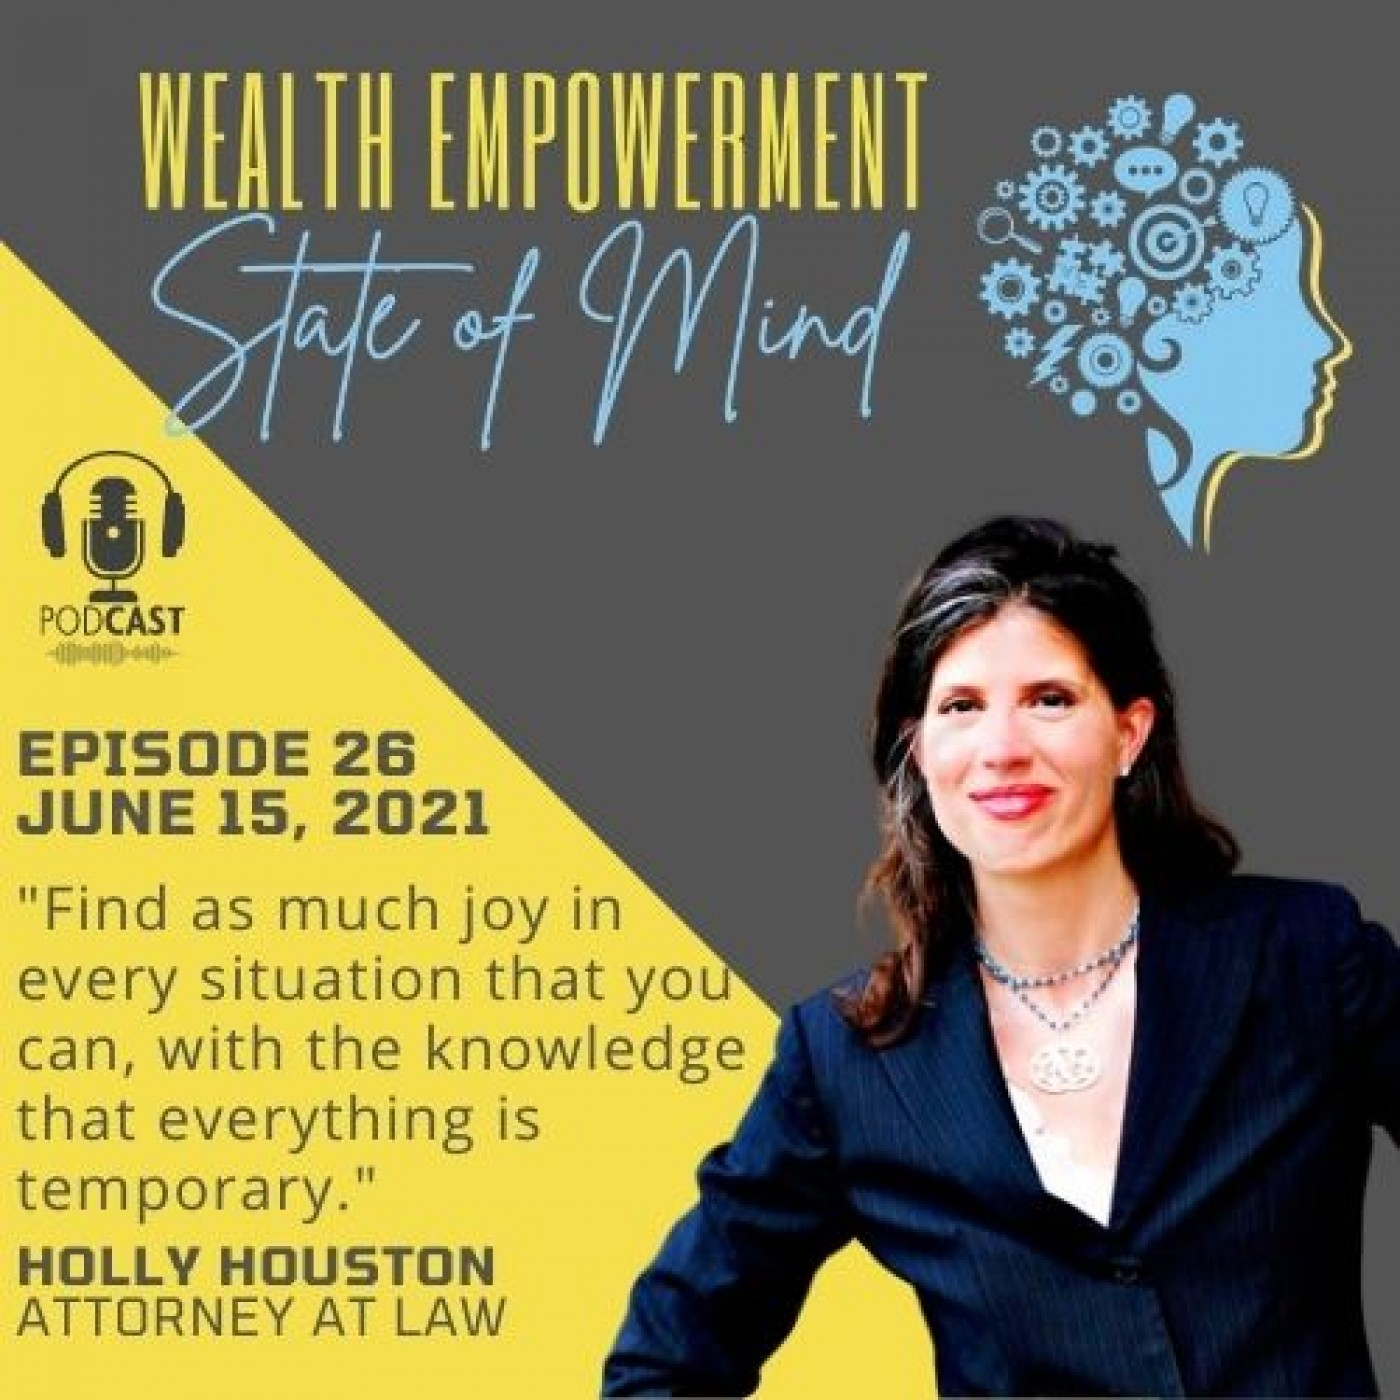 Episode 26: Holly Houston - Attorney at Law